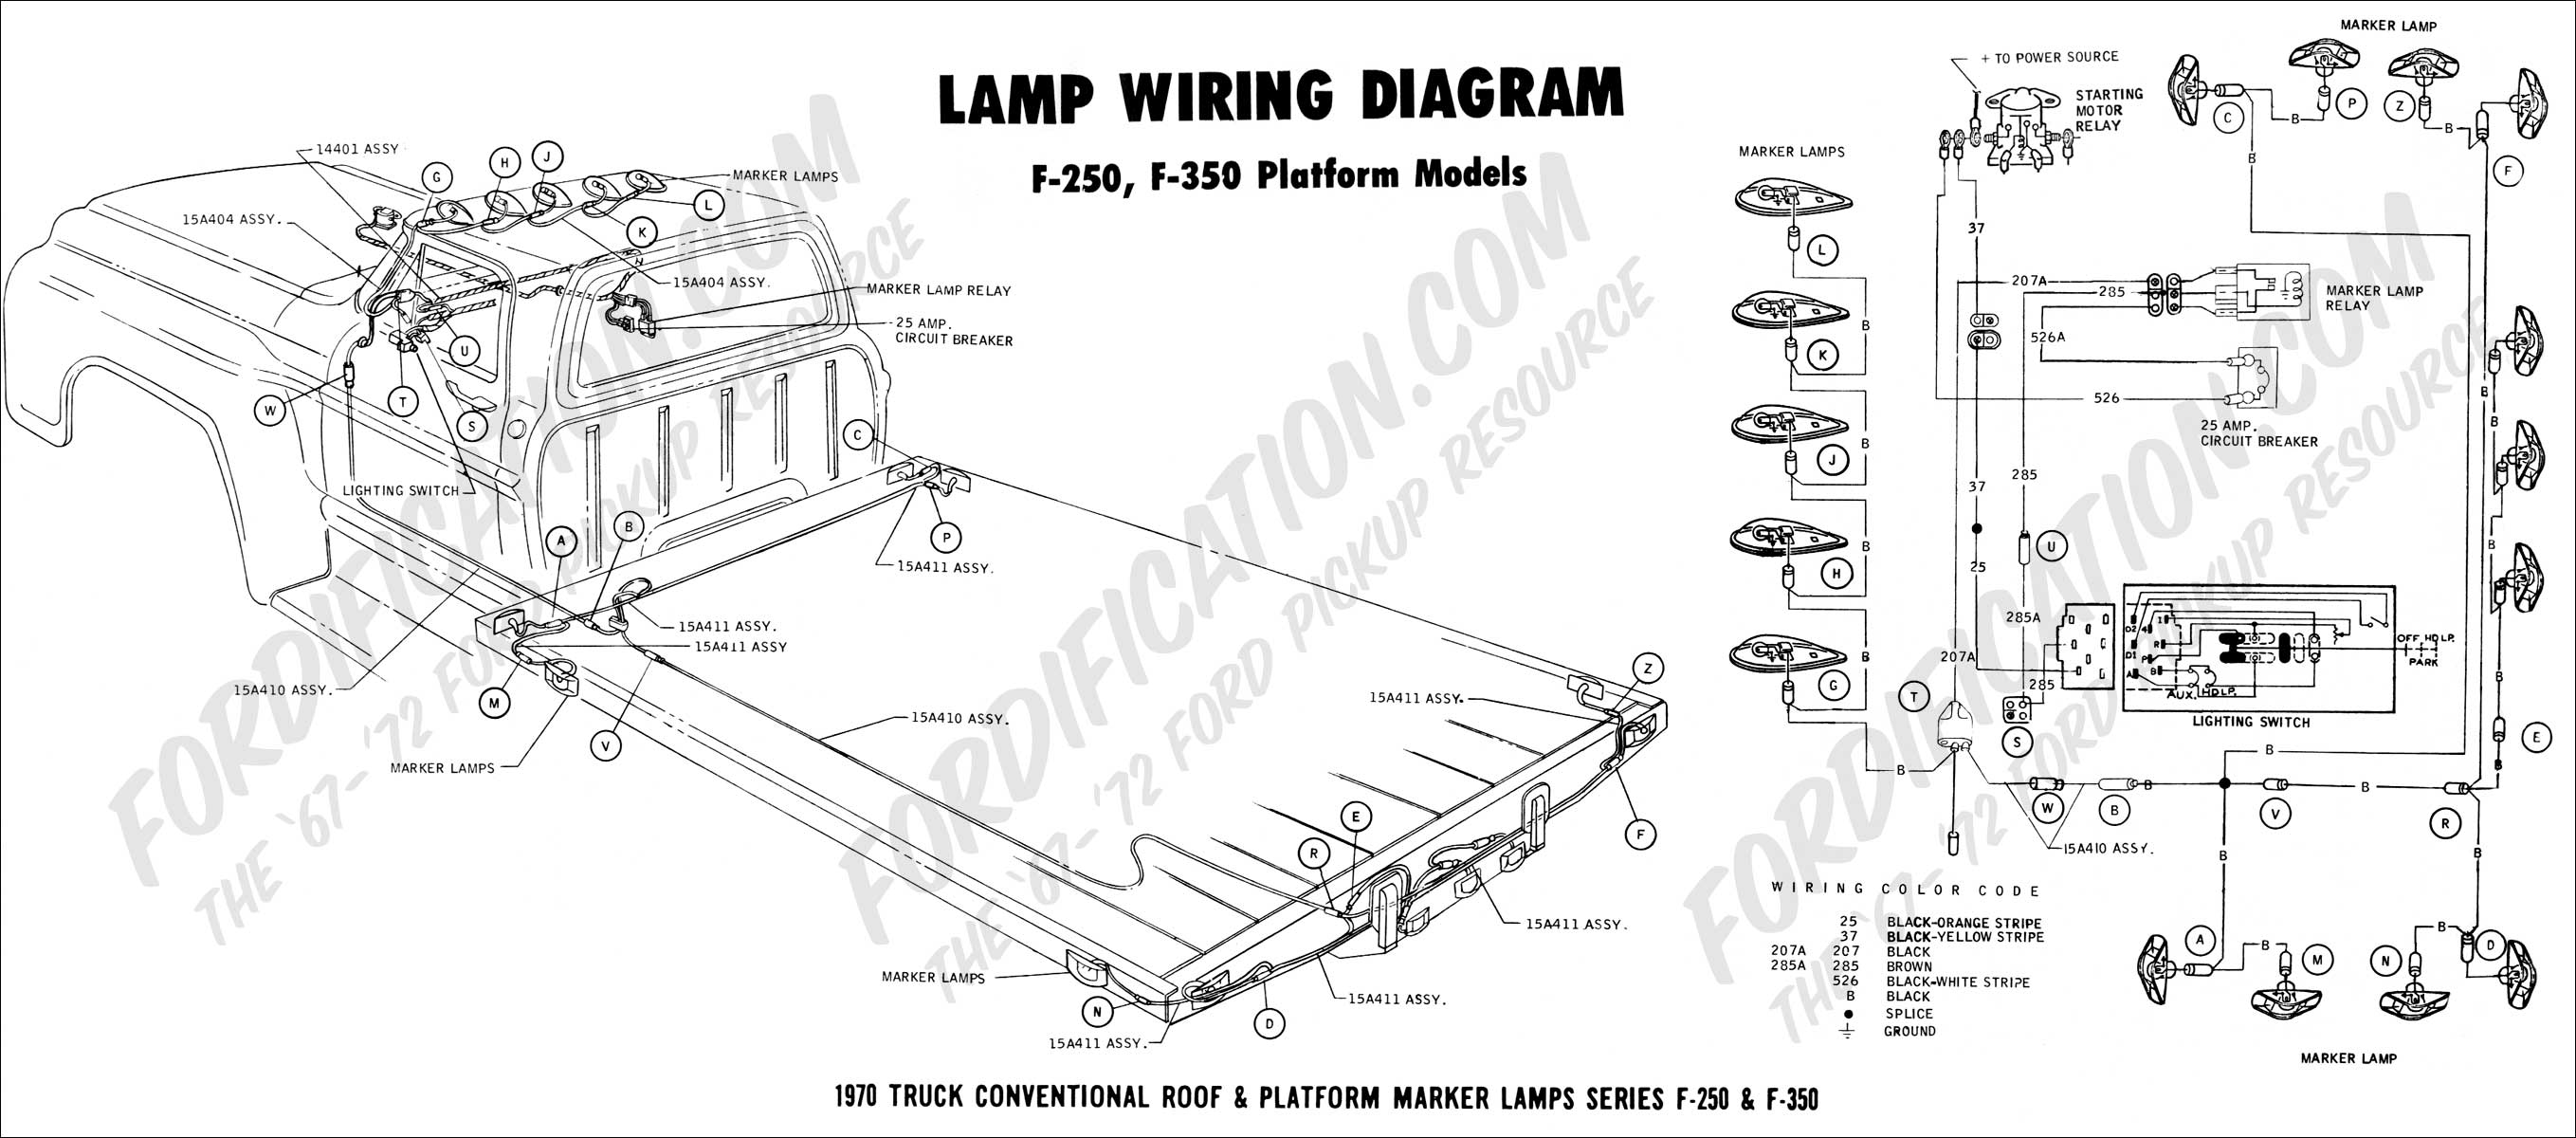 1975 ford f 250 wiring download wiring diagram rh m39 engineering year of flora be 1972 ford f250 ignition wiring diagram